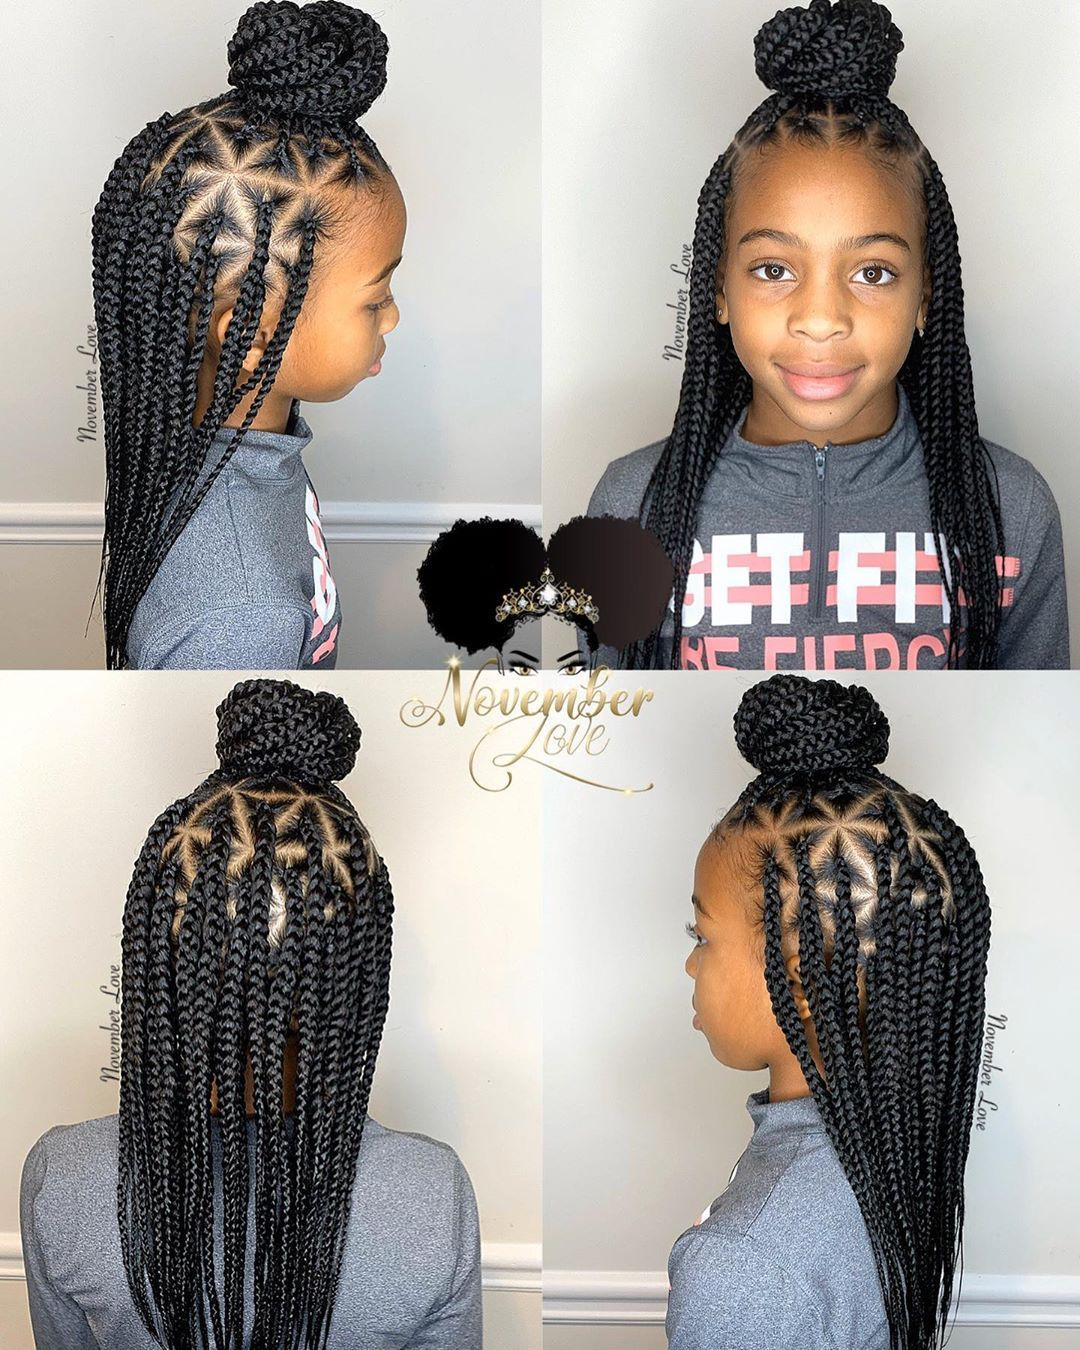 Braids For Kids 100 Back To School Braided Hairstyles For Kids In 2020 Braids For Kids Kids Braided Hairstyles Kids Hairstyles Girls